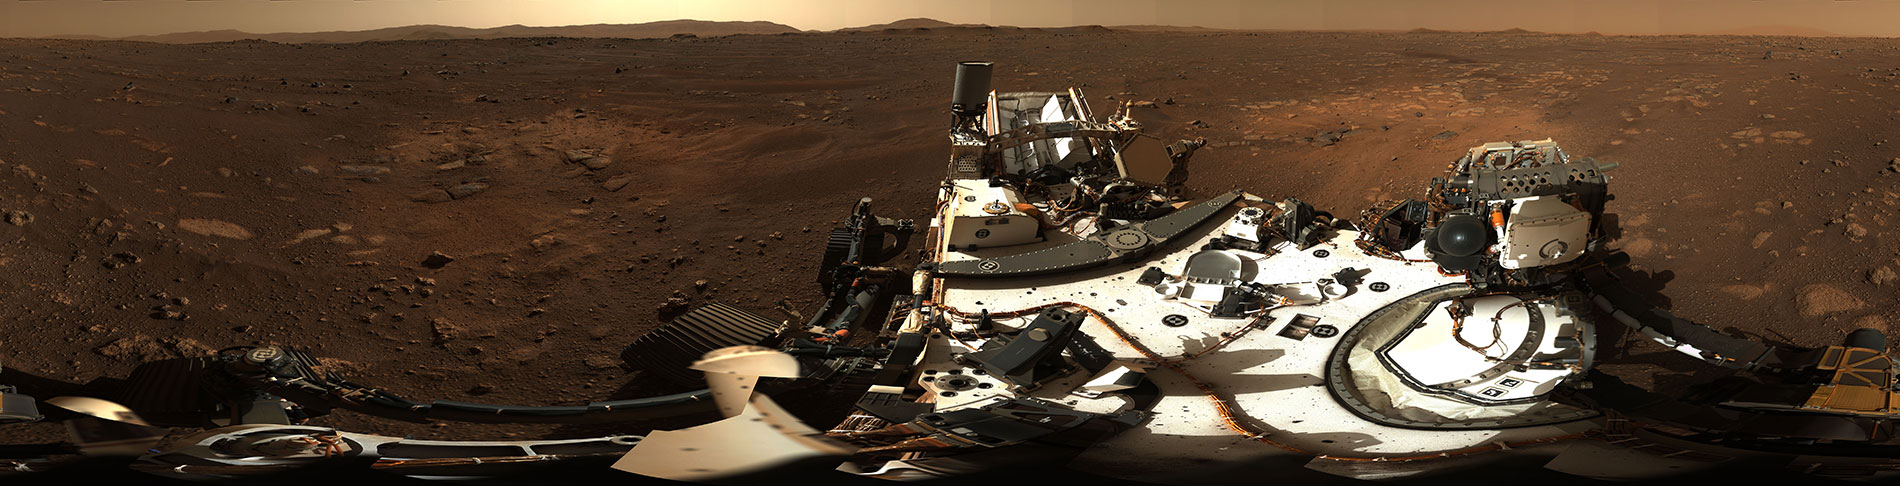 Perseverance Rover's High-Definition Panoramic View of Landing Site - NASA